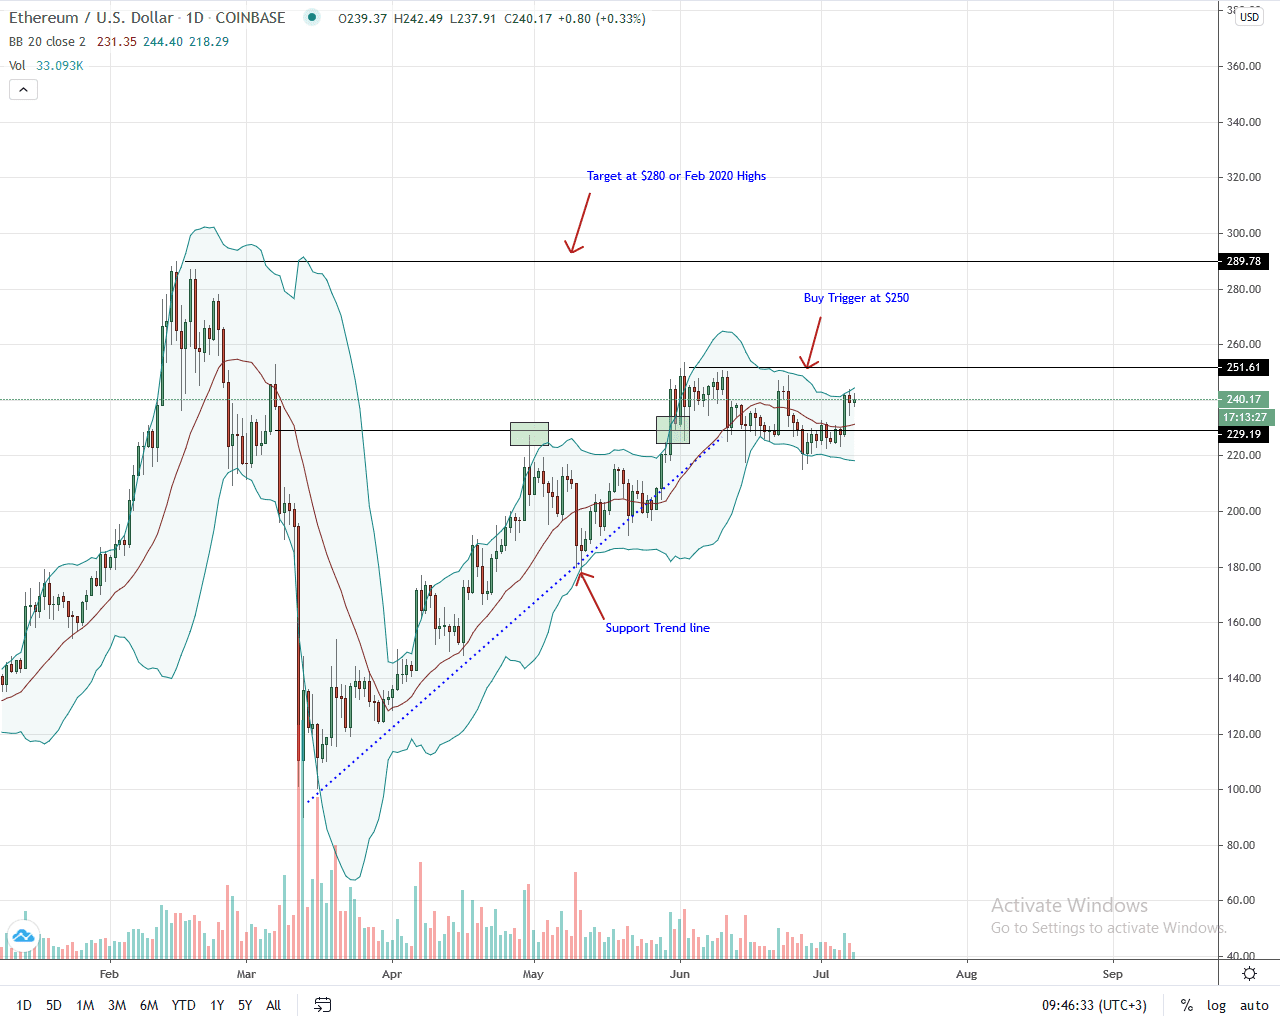 Ethereum Daily Chart for July 8, 2020